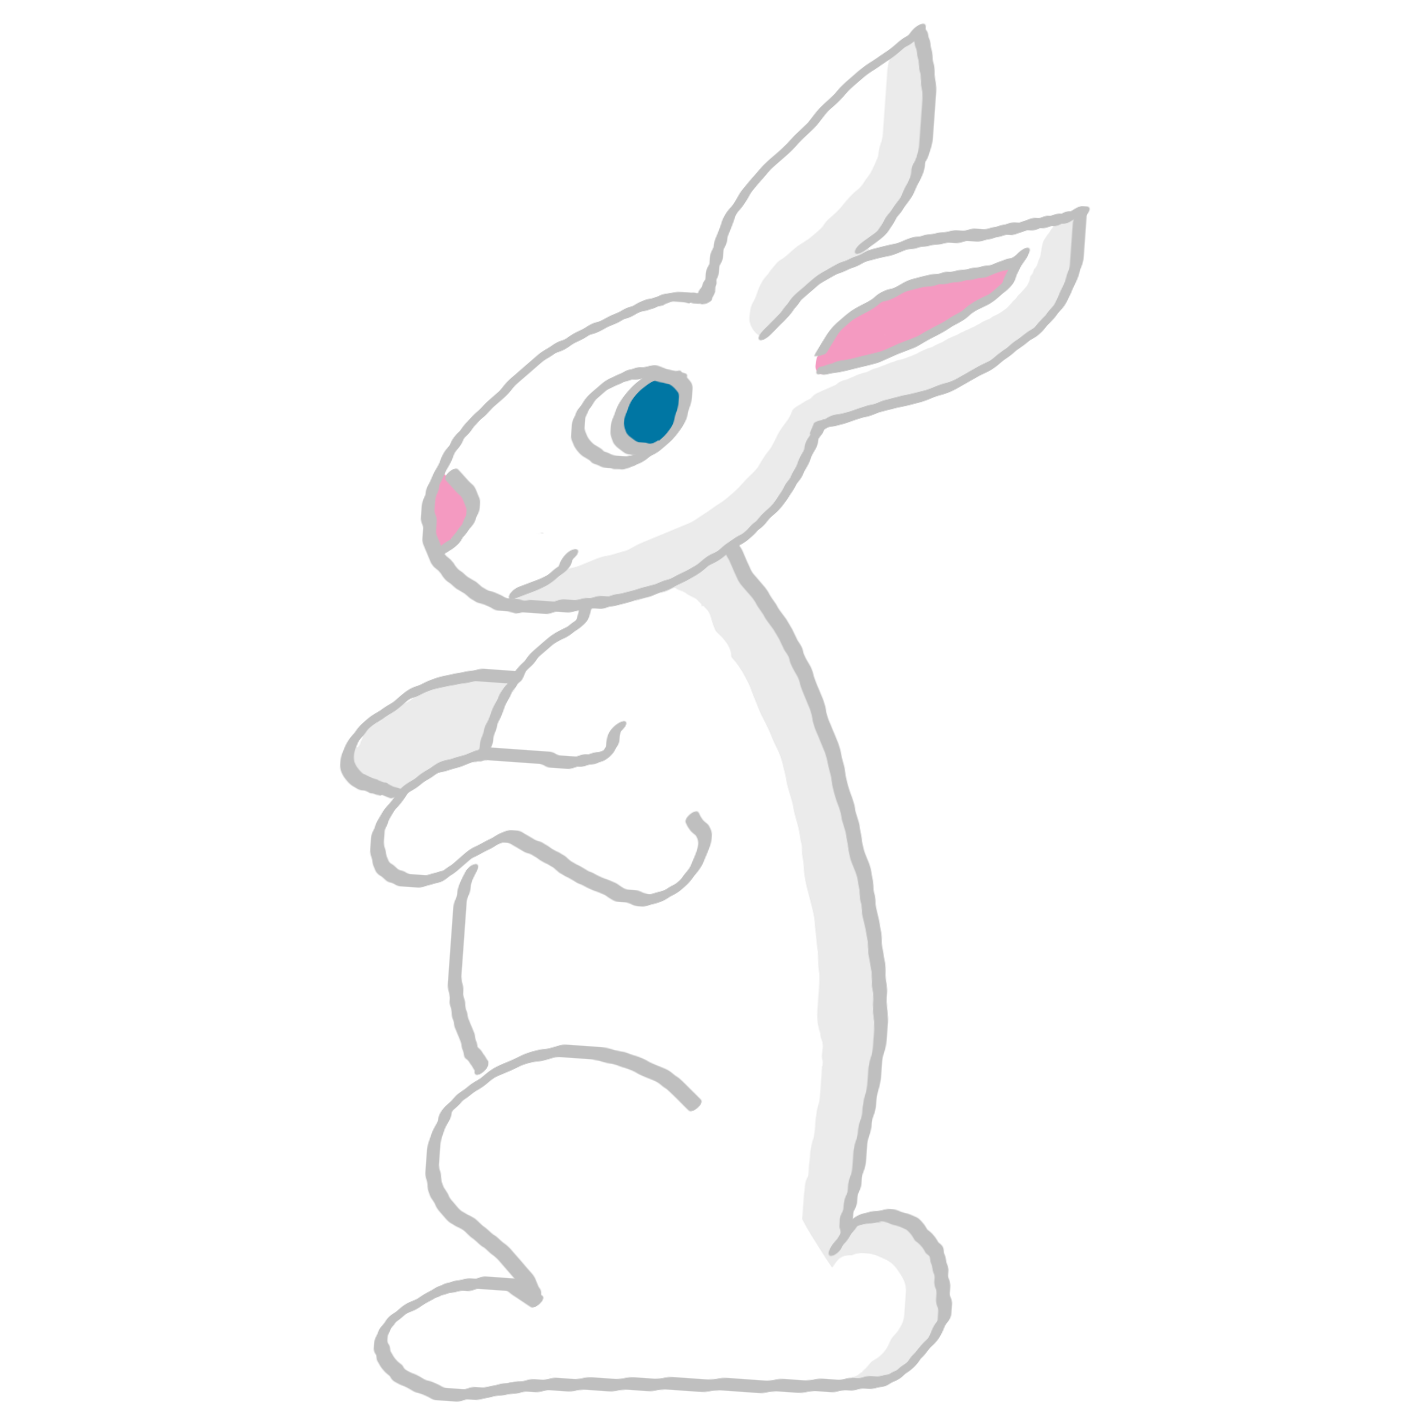 picture download Free on dumielauxepices net. Mouth clipart bunny.